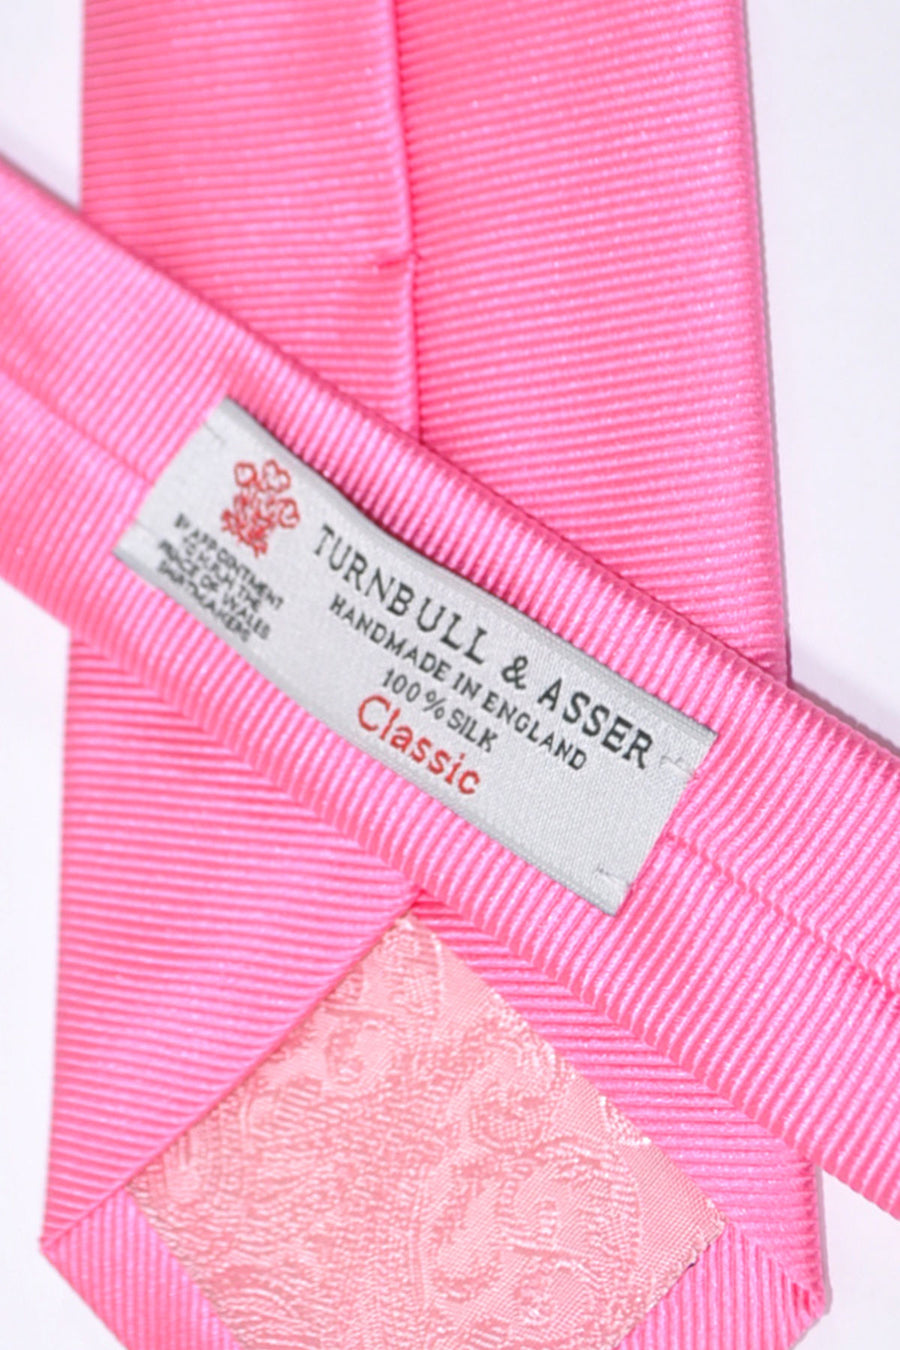 Turnbull & Asser Tie Solid Pink Grosgrain SALE